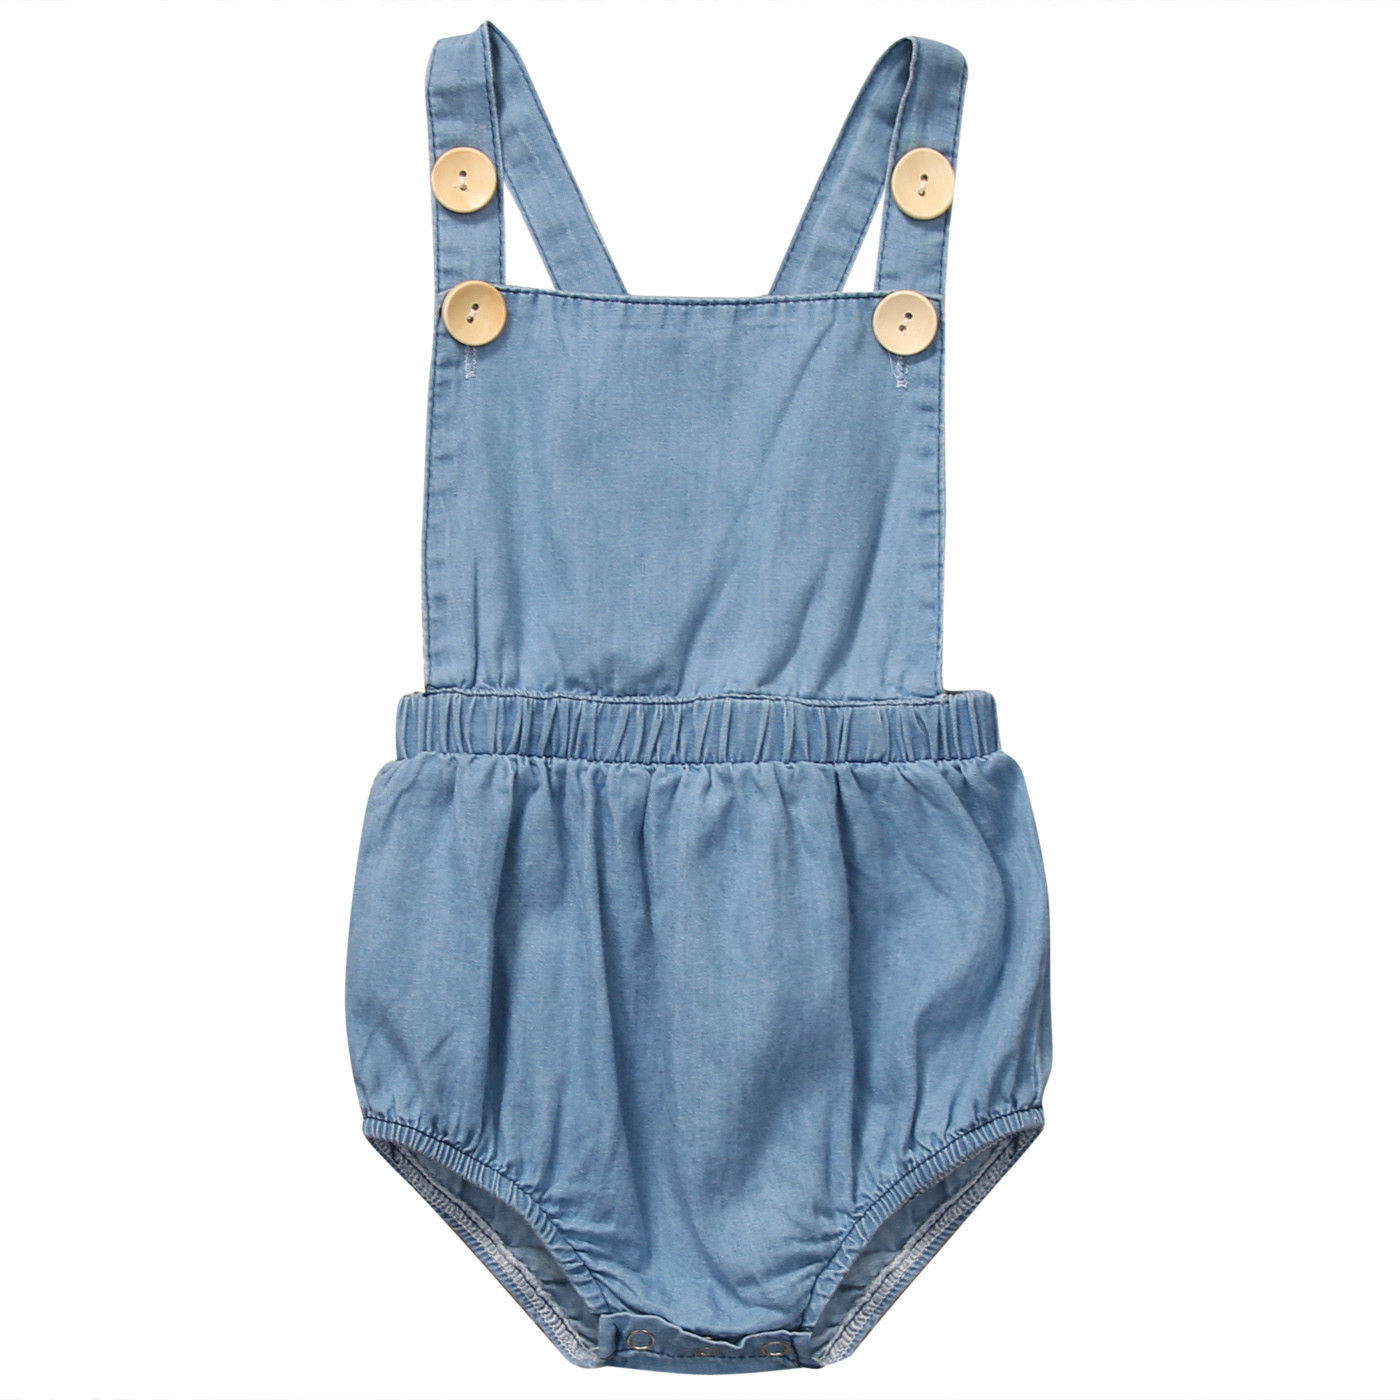 Infant Kids Jeans Romper Baby Girls Denim Clothes Sleeveless Playsuit Romper Jumpsuit Outfit ...